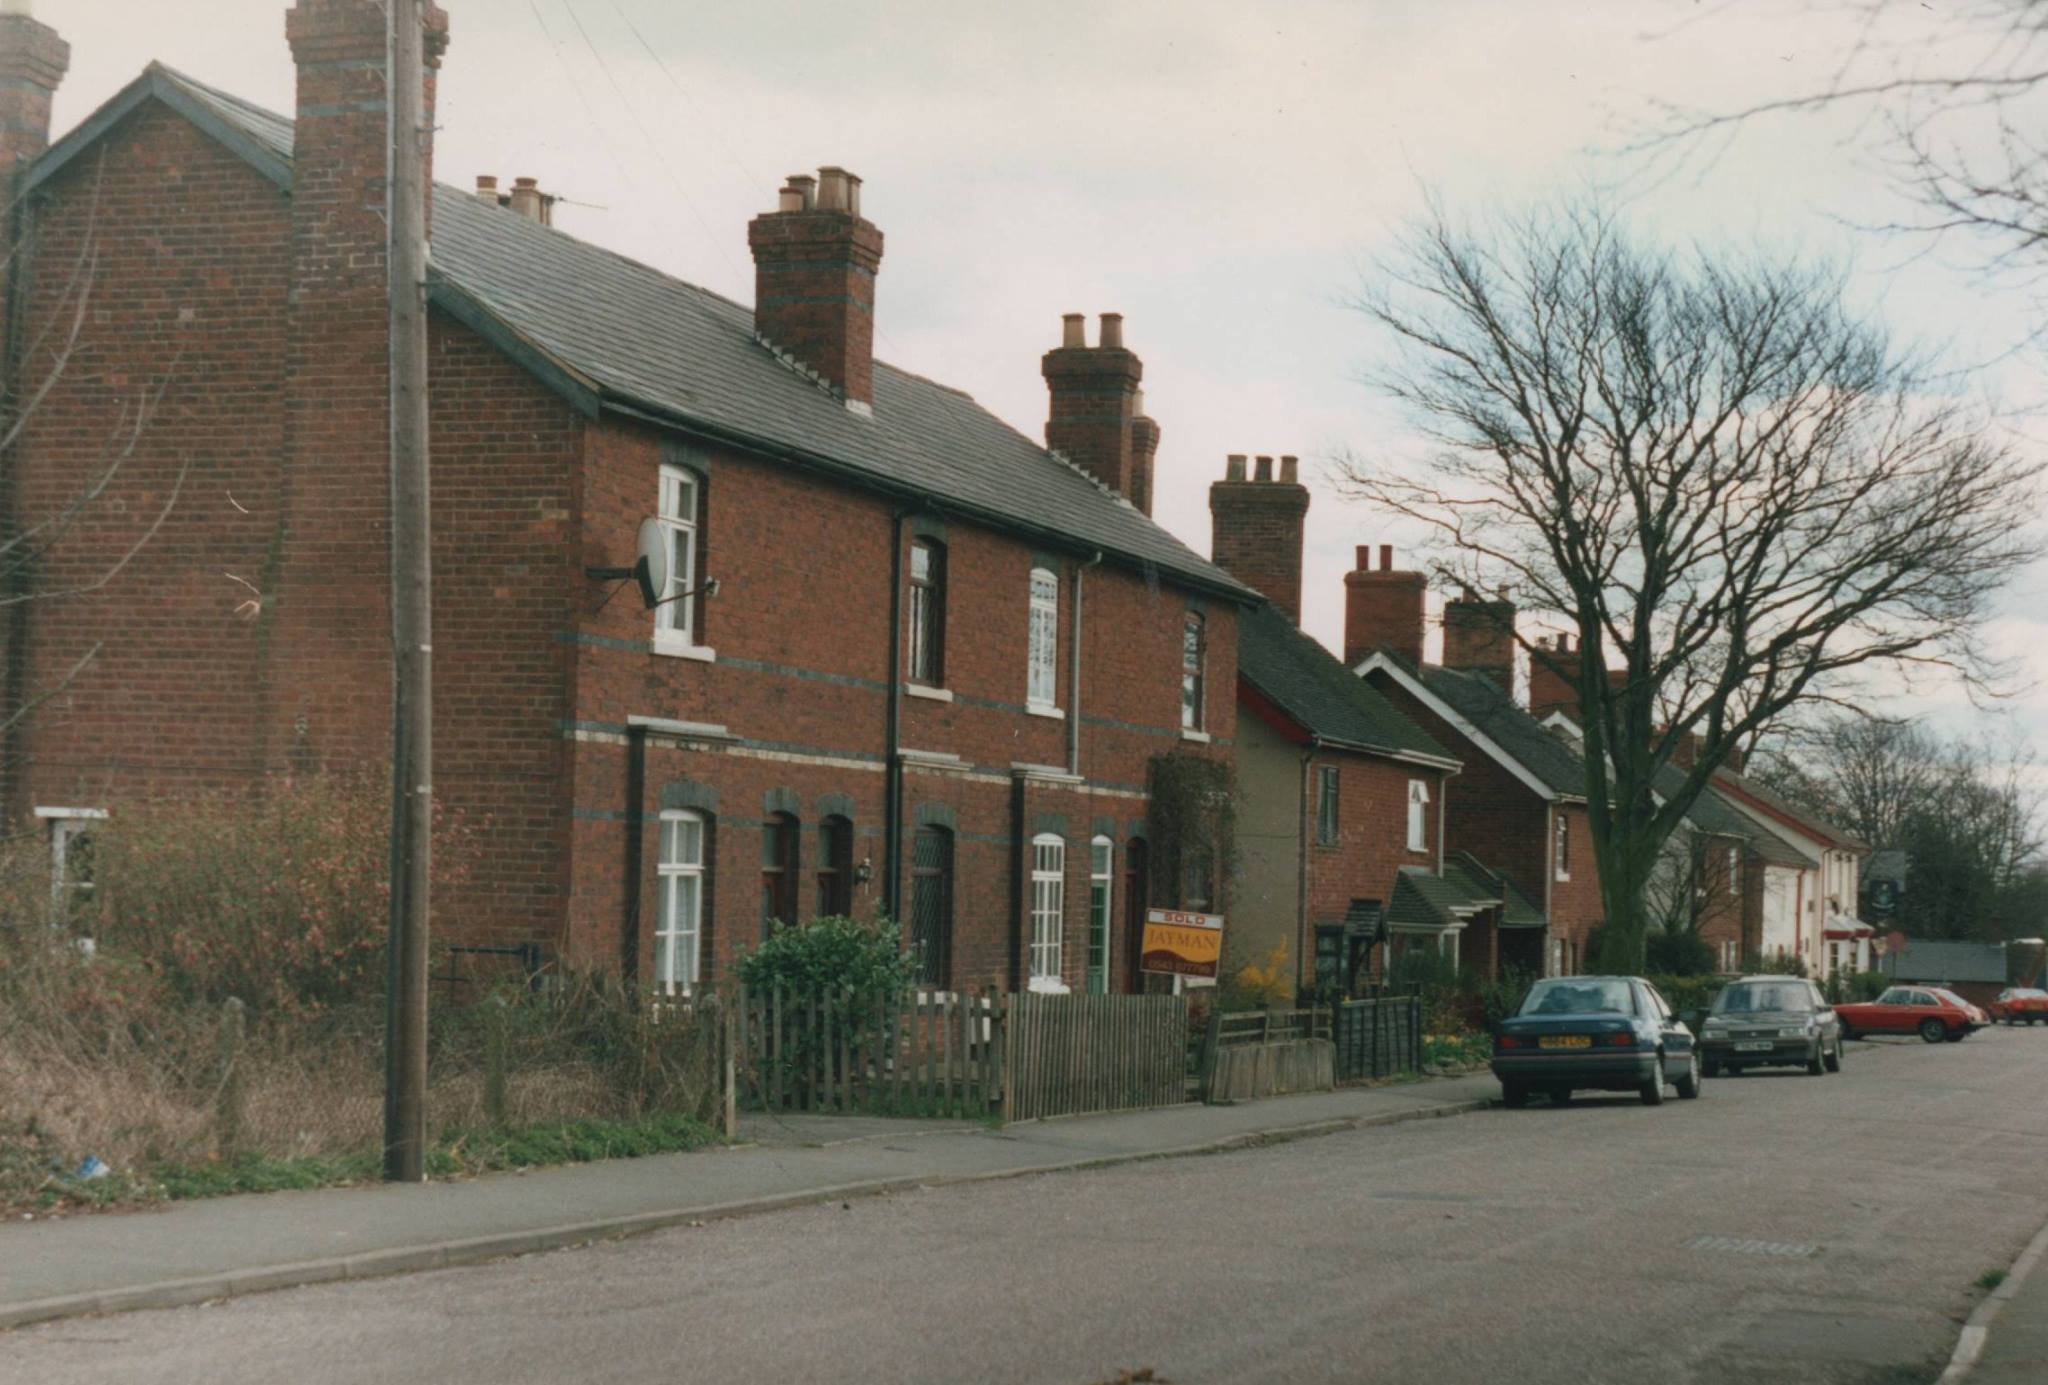 Church Street, Chasetown, the original first house built 1993